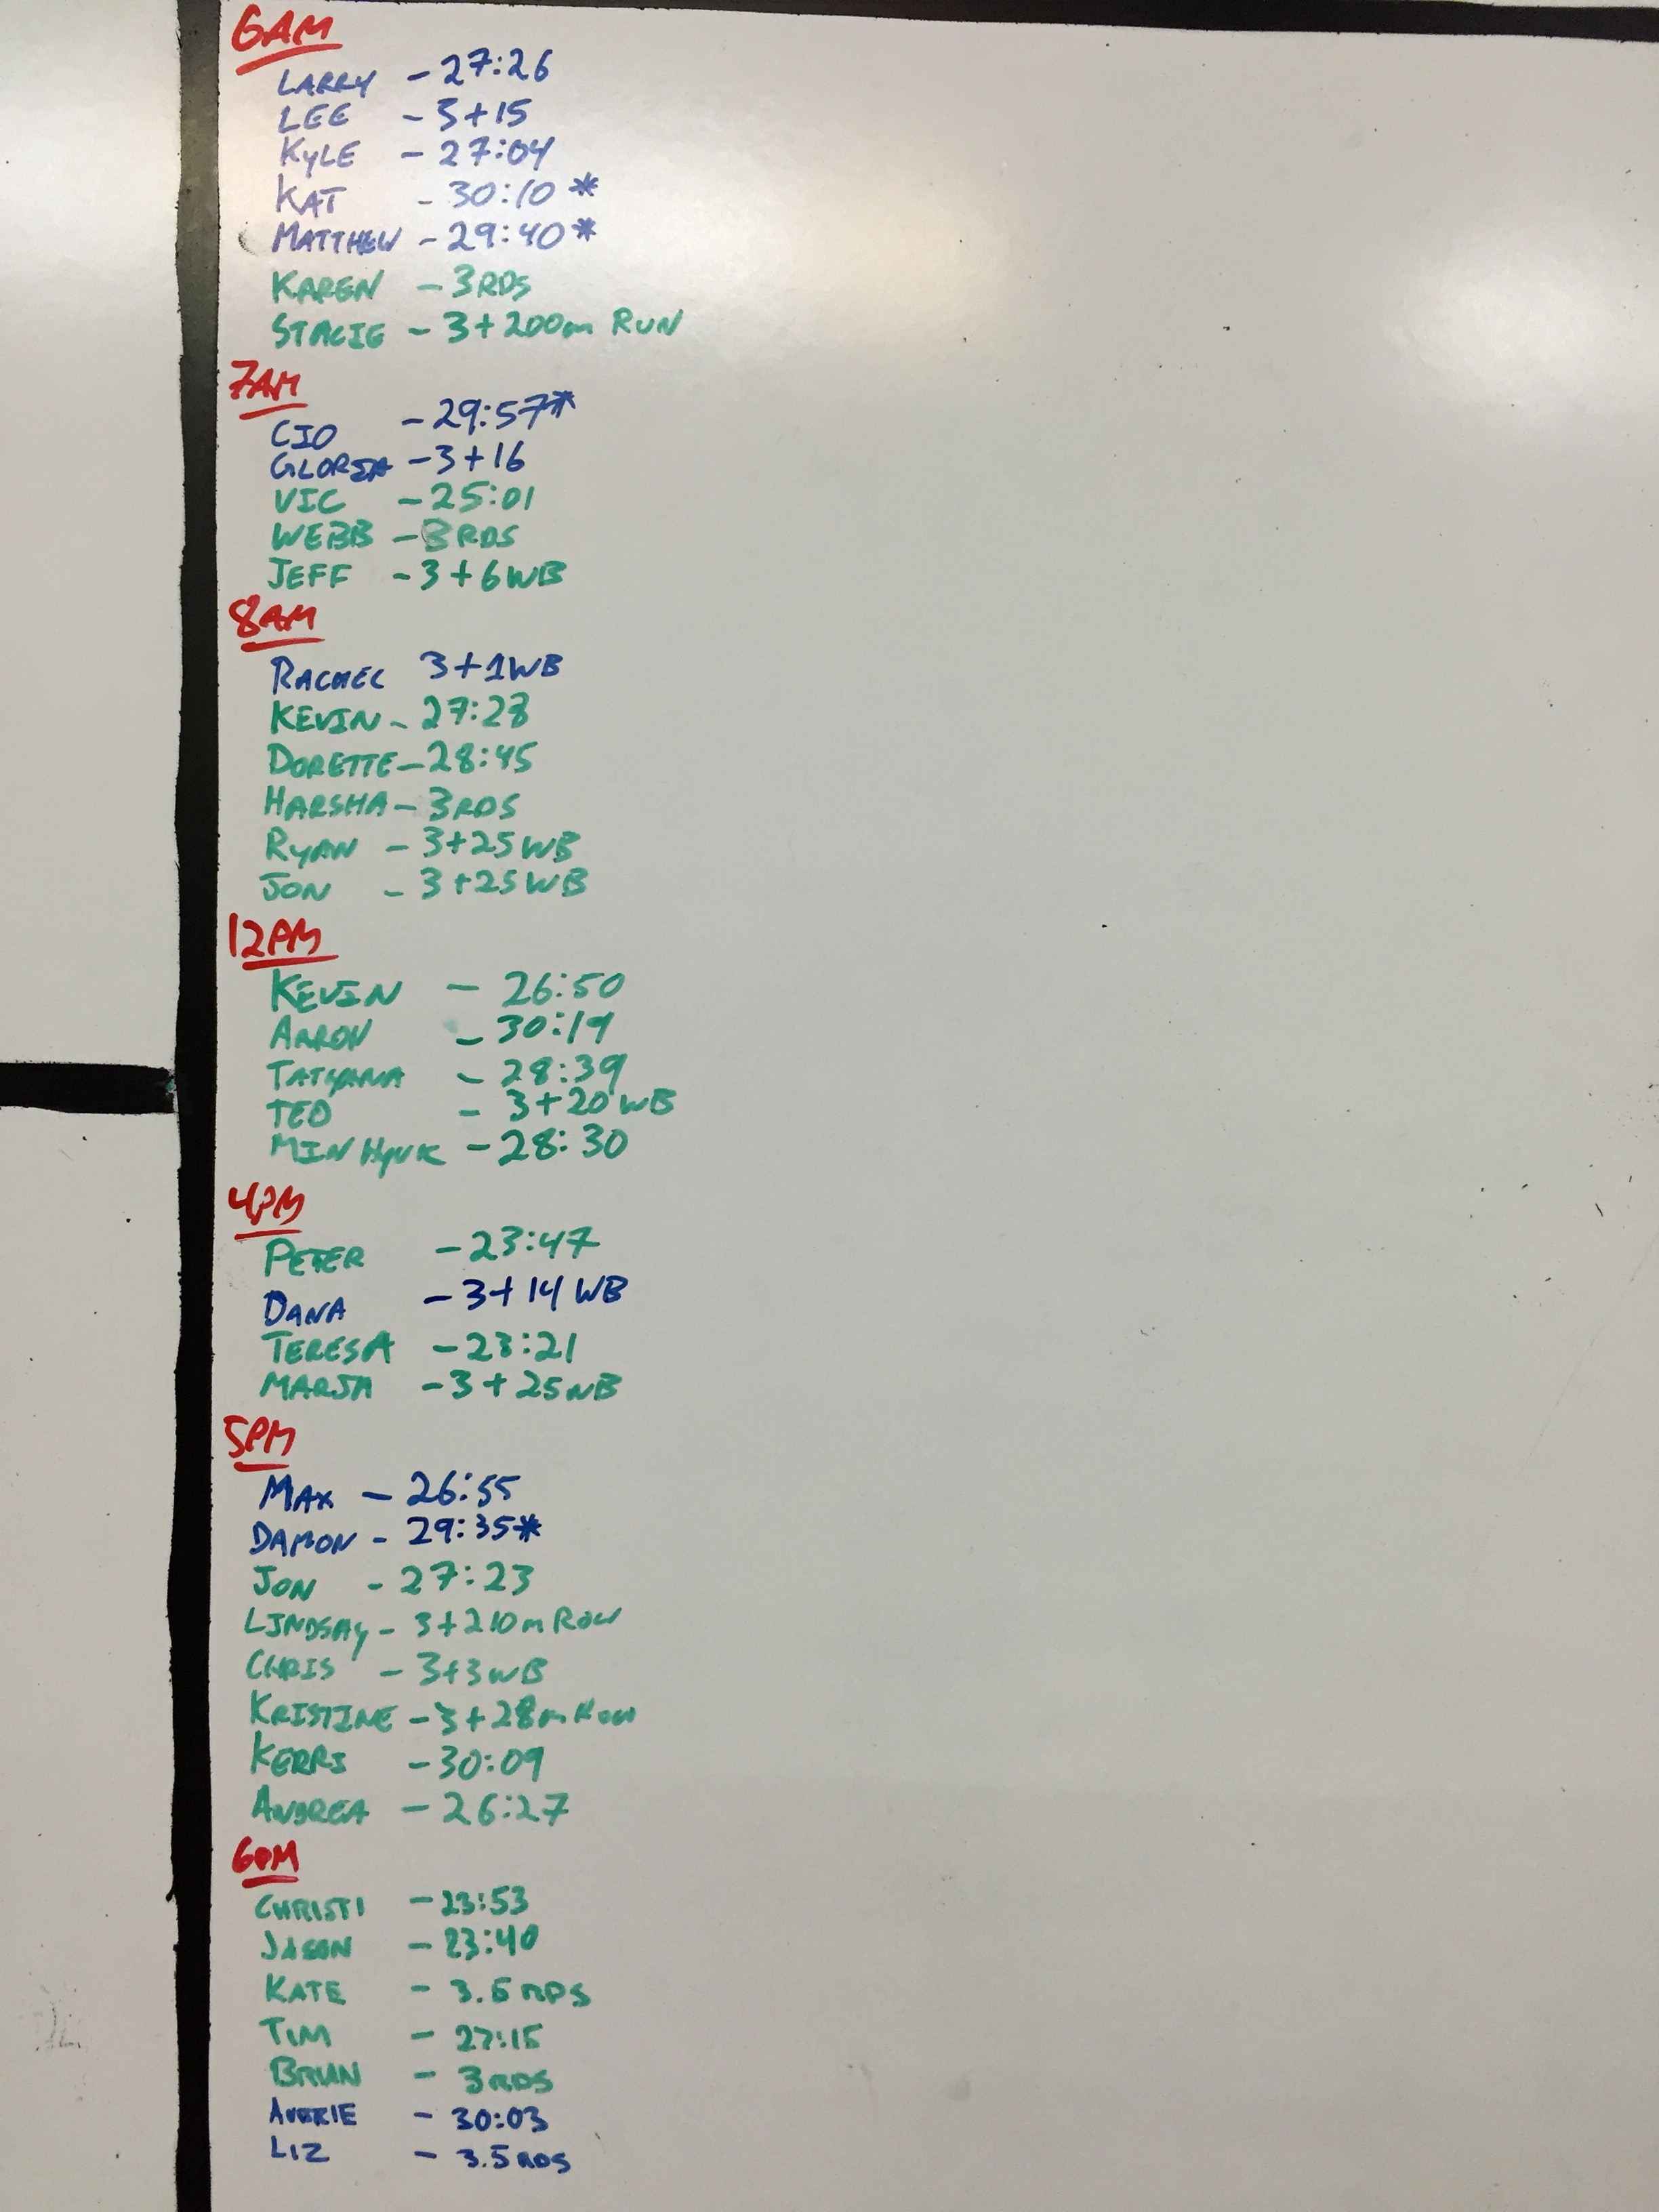 Oct 8 WOD Results